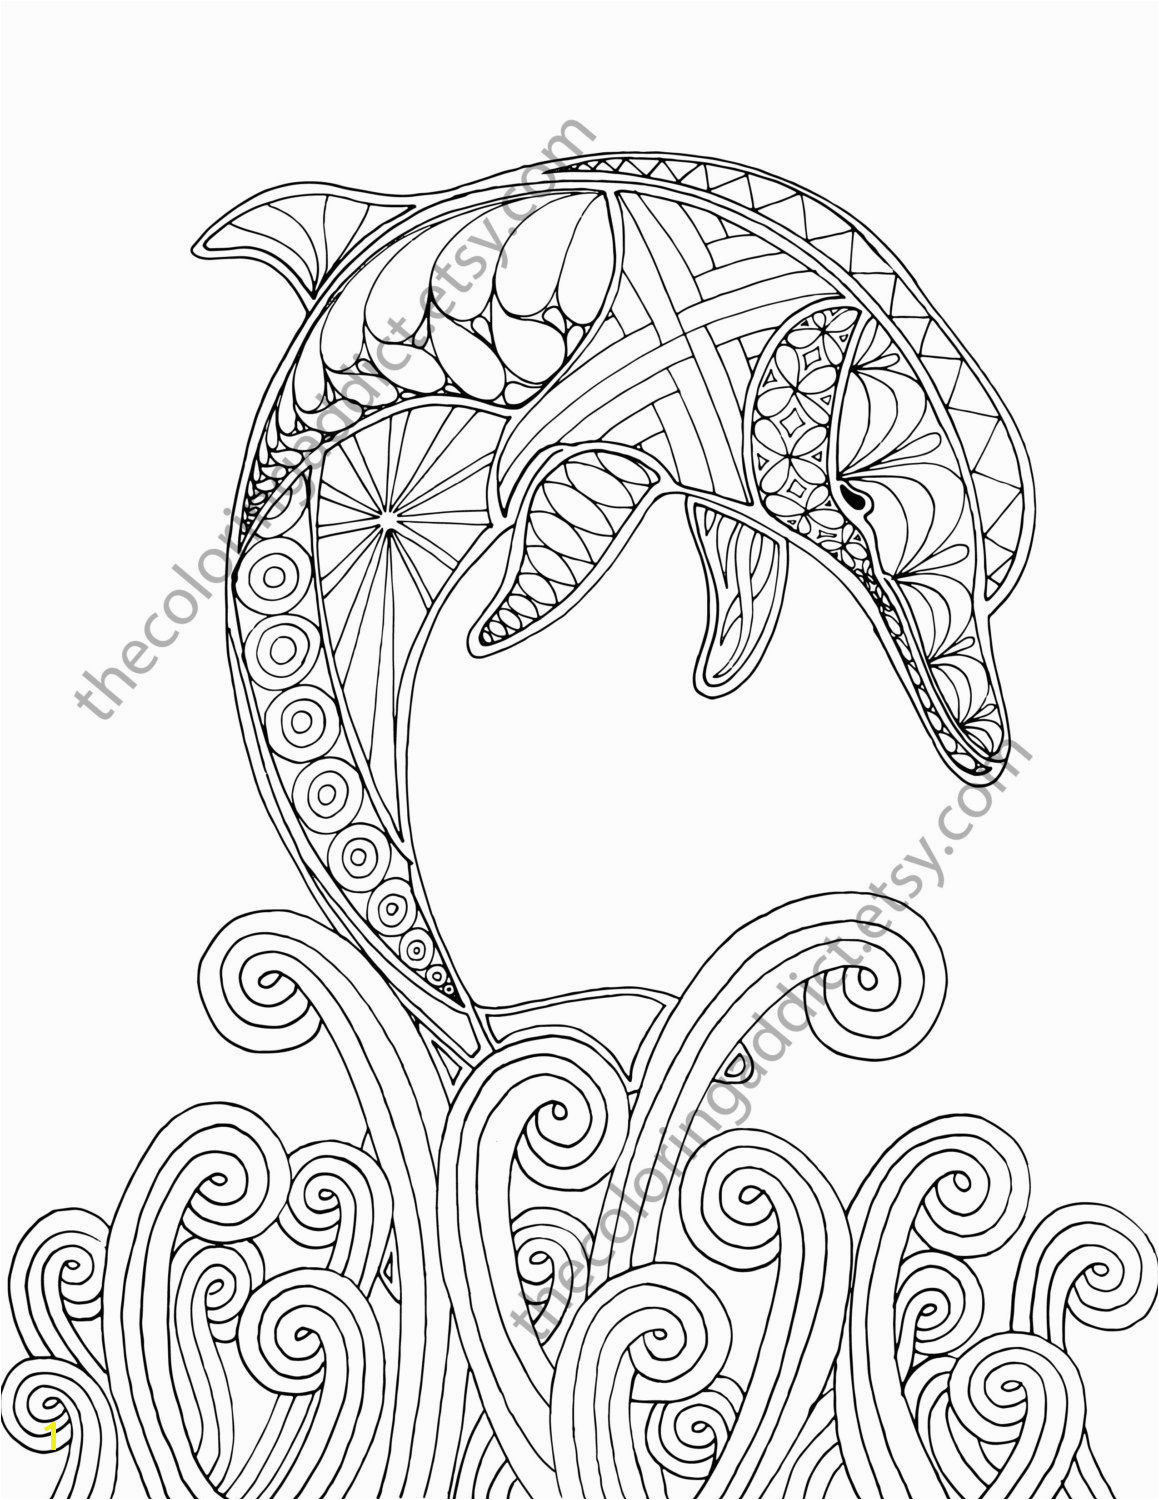 dolphin coloring page adult coloring sheet by TheColoringAddict